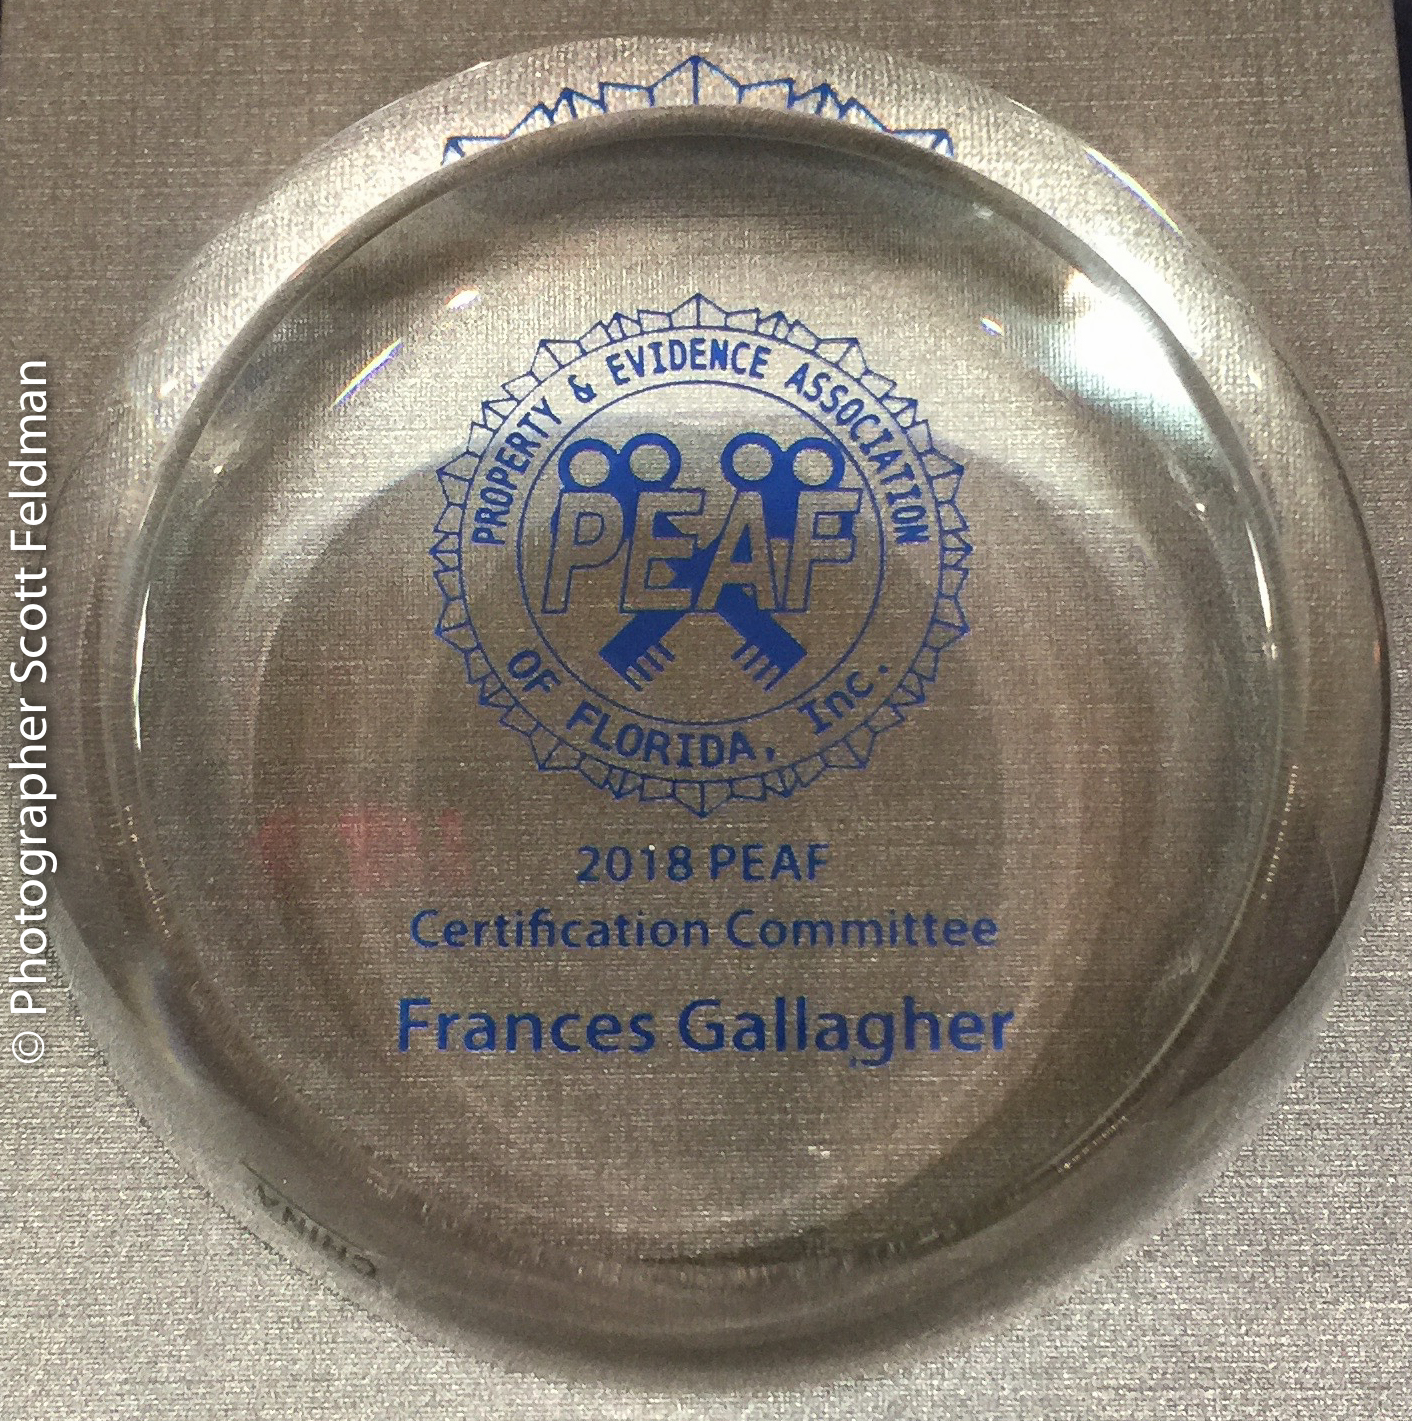 certification-committee-award-frances-gallagher